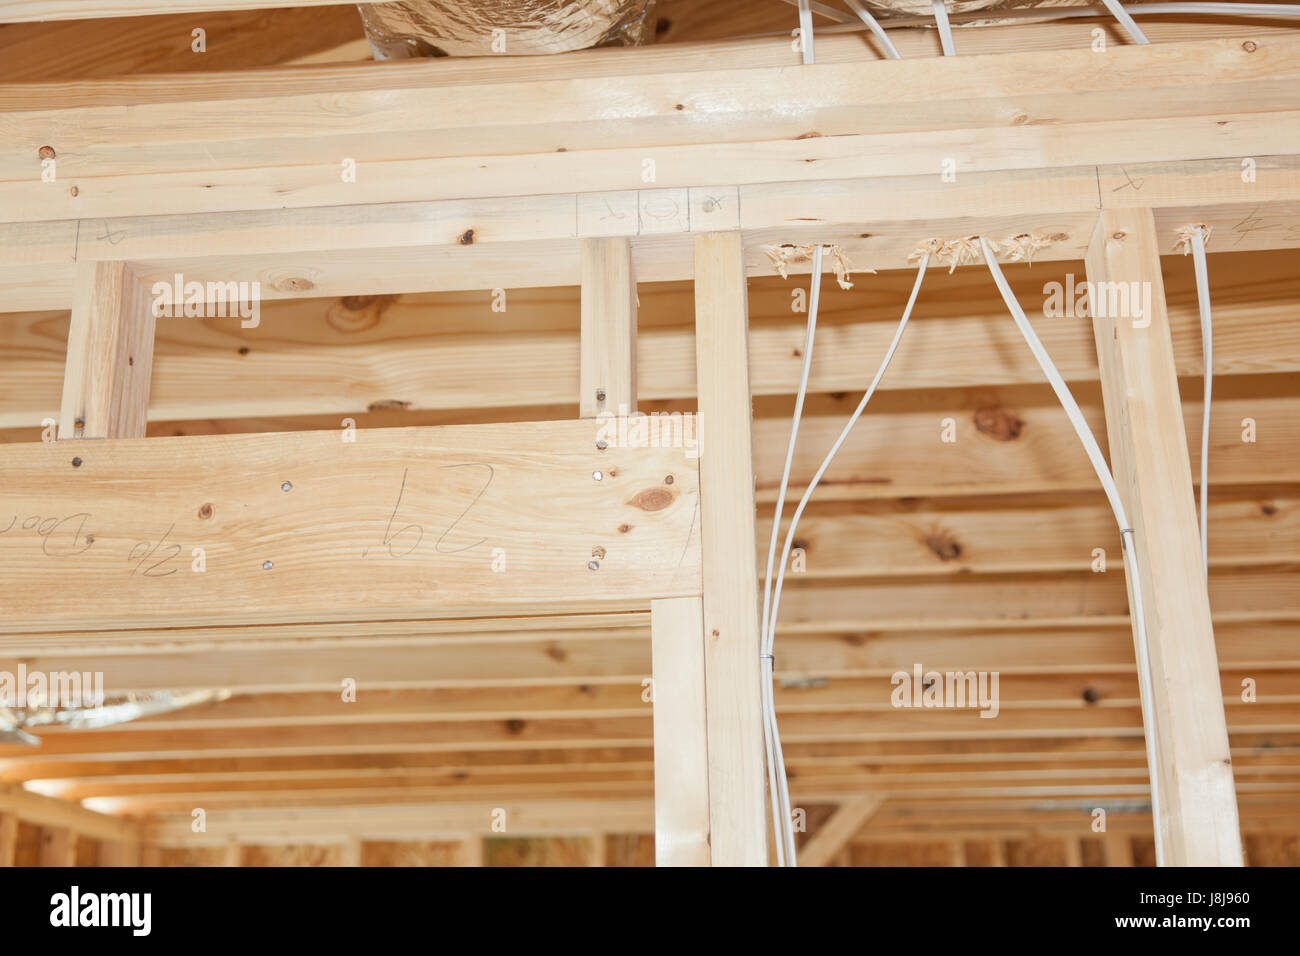 New Home Framing With Electrical Wires Stock Photo Alamy